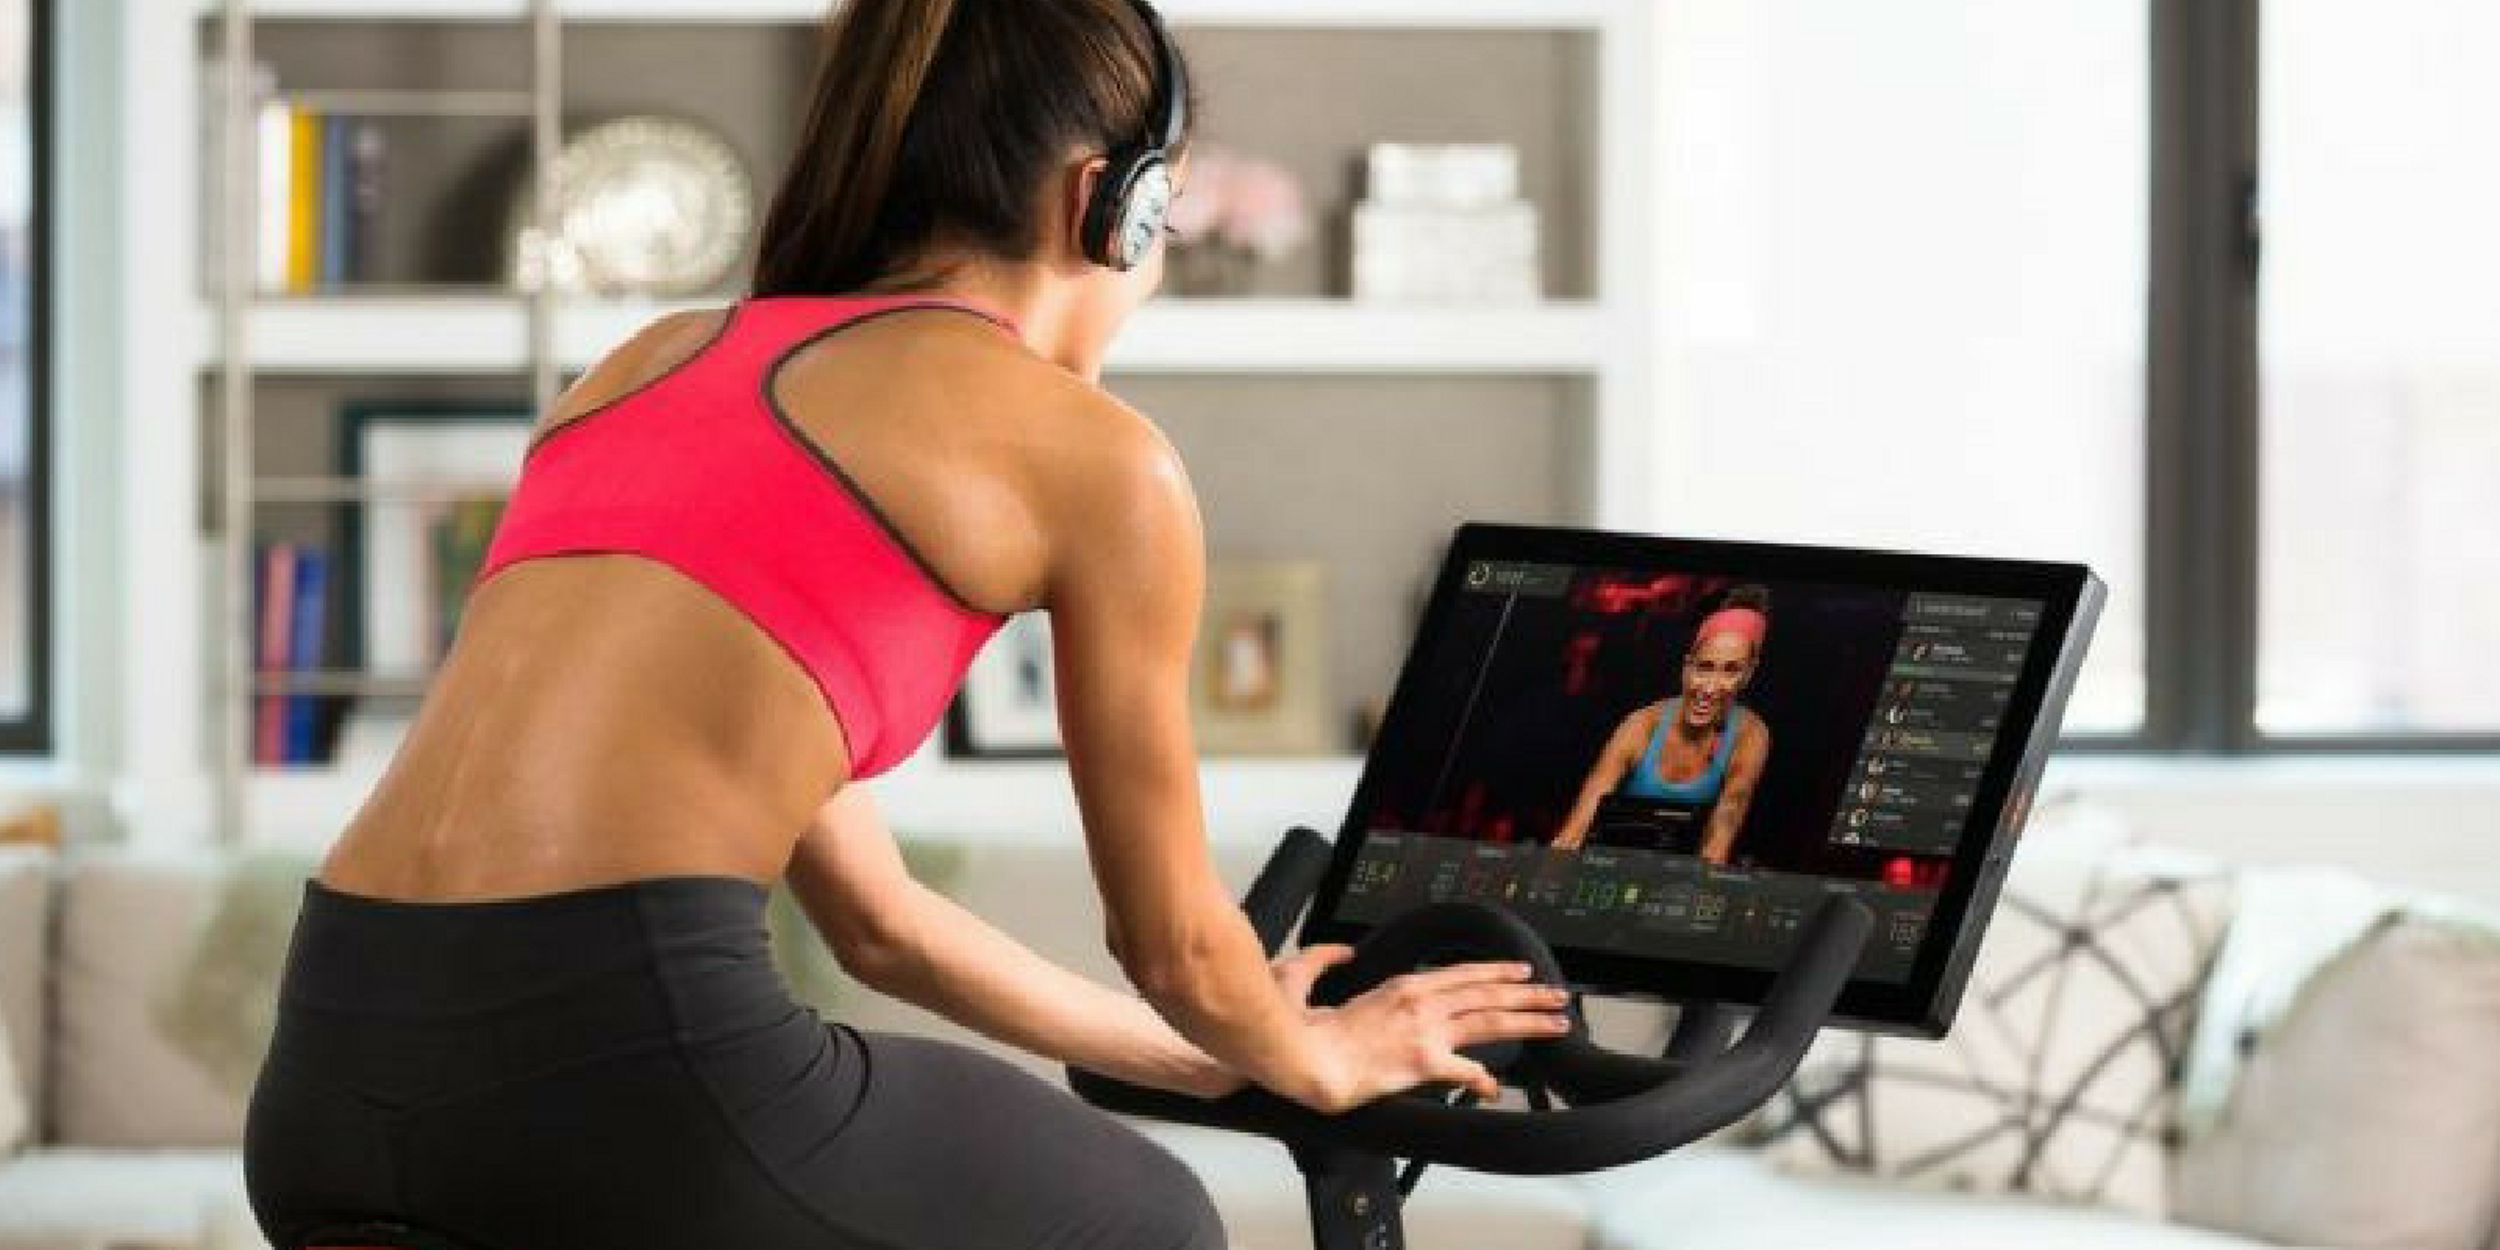 Spinning Classes Streaming Company Peloton Attracting $550M in a Final Push before Public Flotation